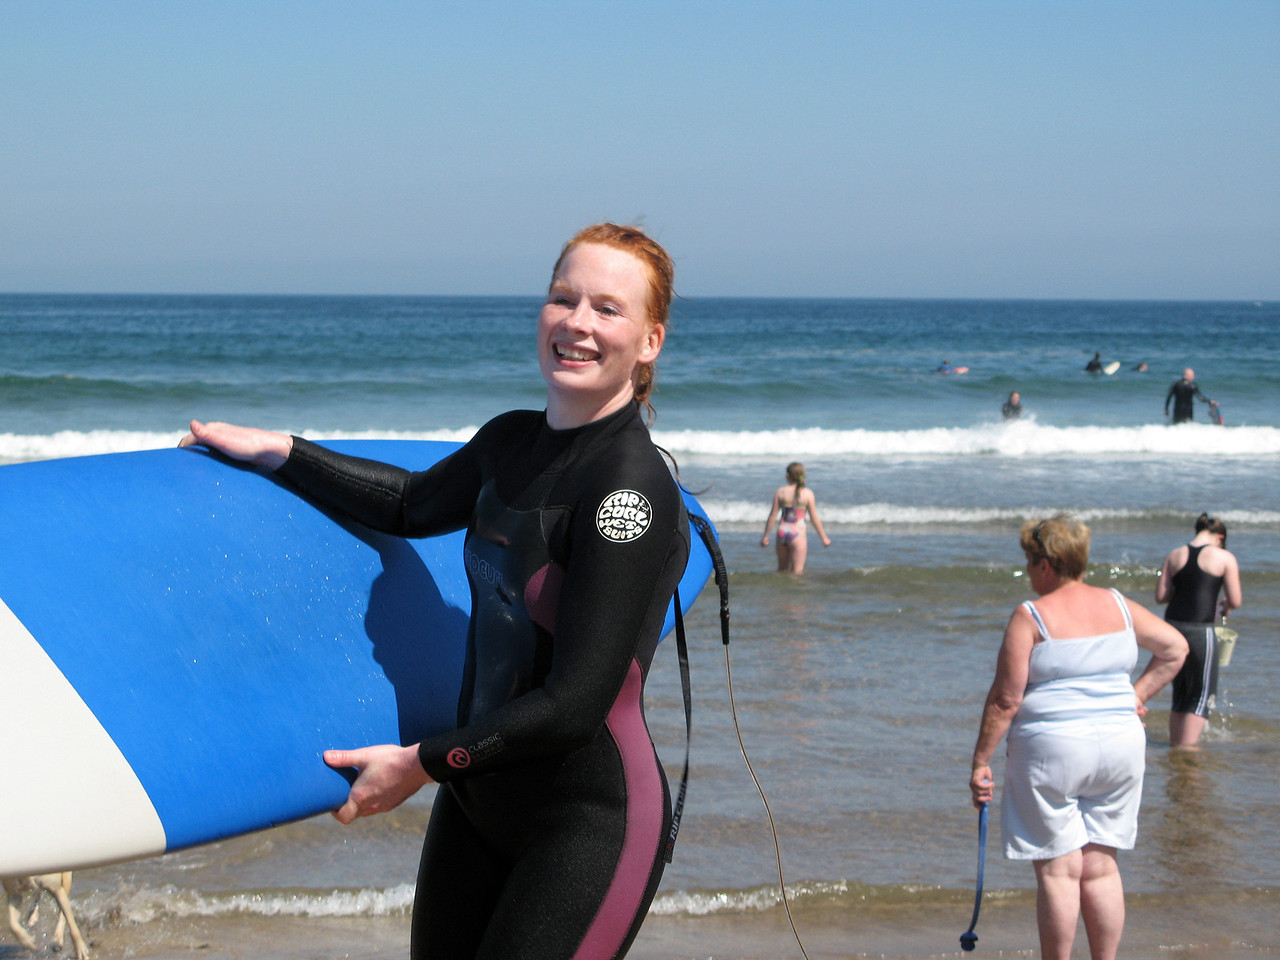 Vicky after the first round of surfing